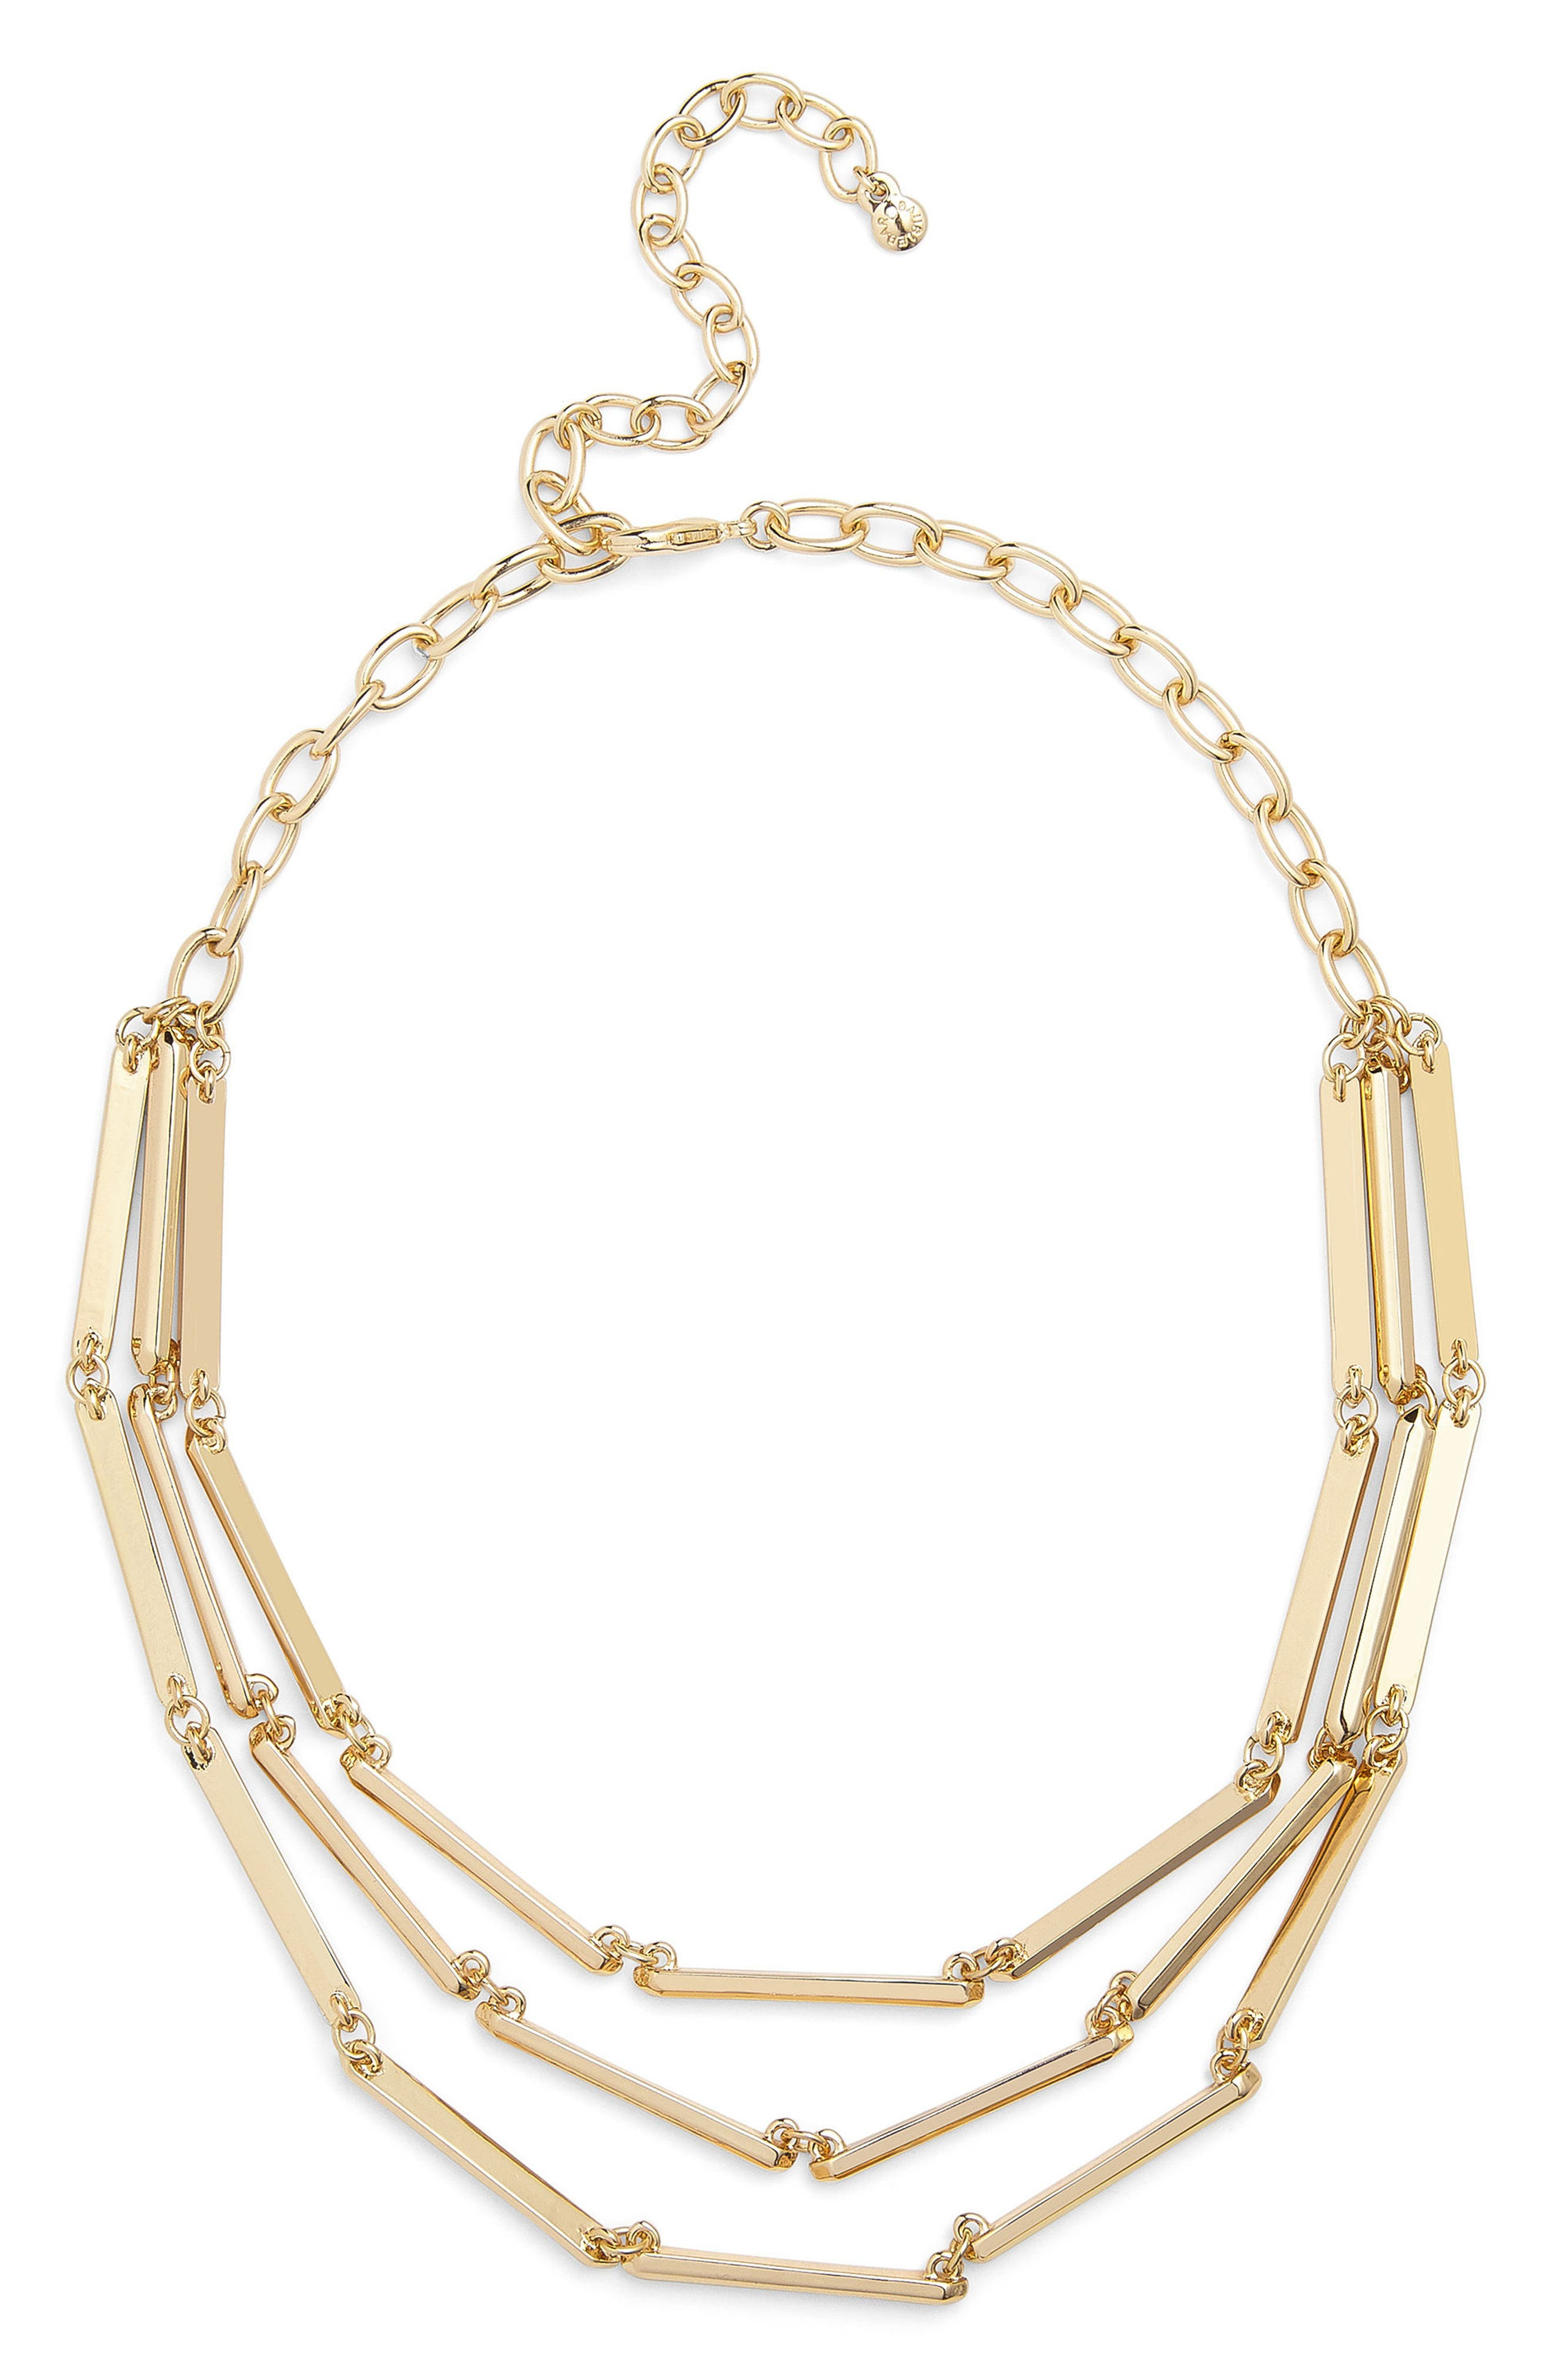 Payla Multistrand Necklace,                             Main thumbnail 1, color,                             Gold